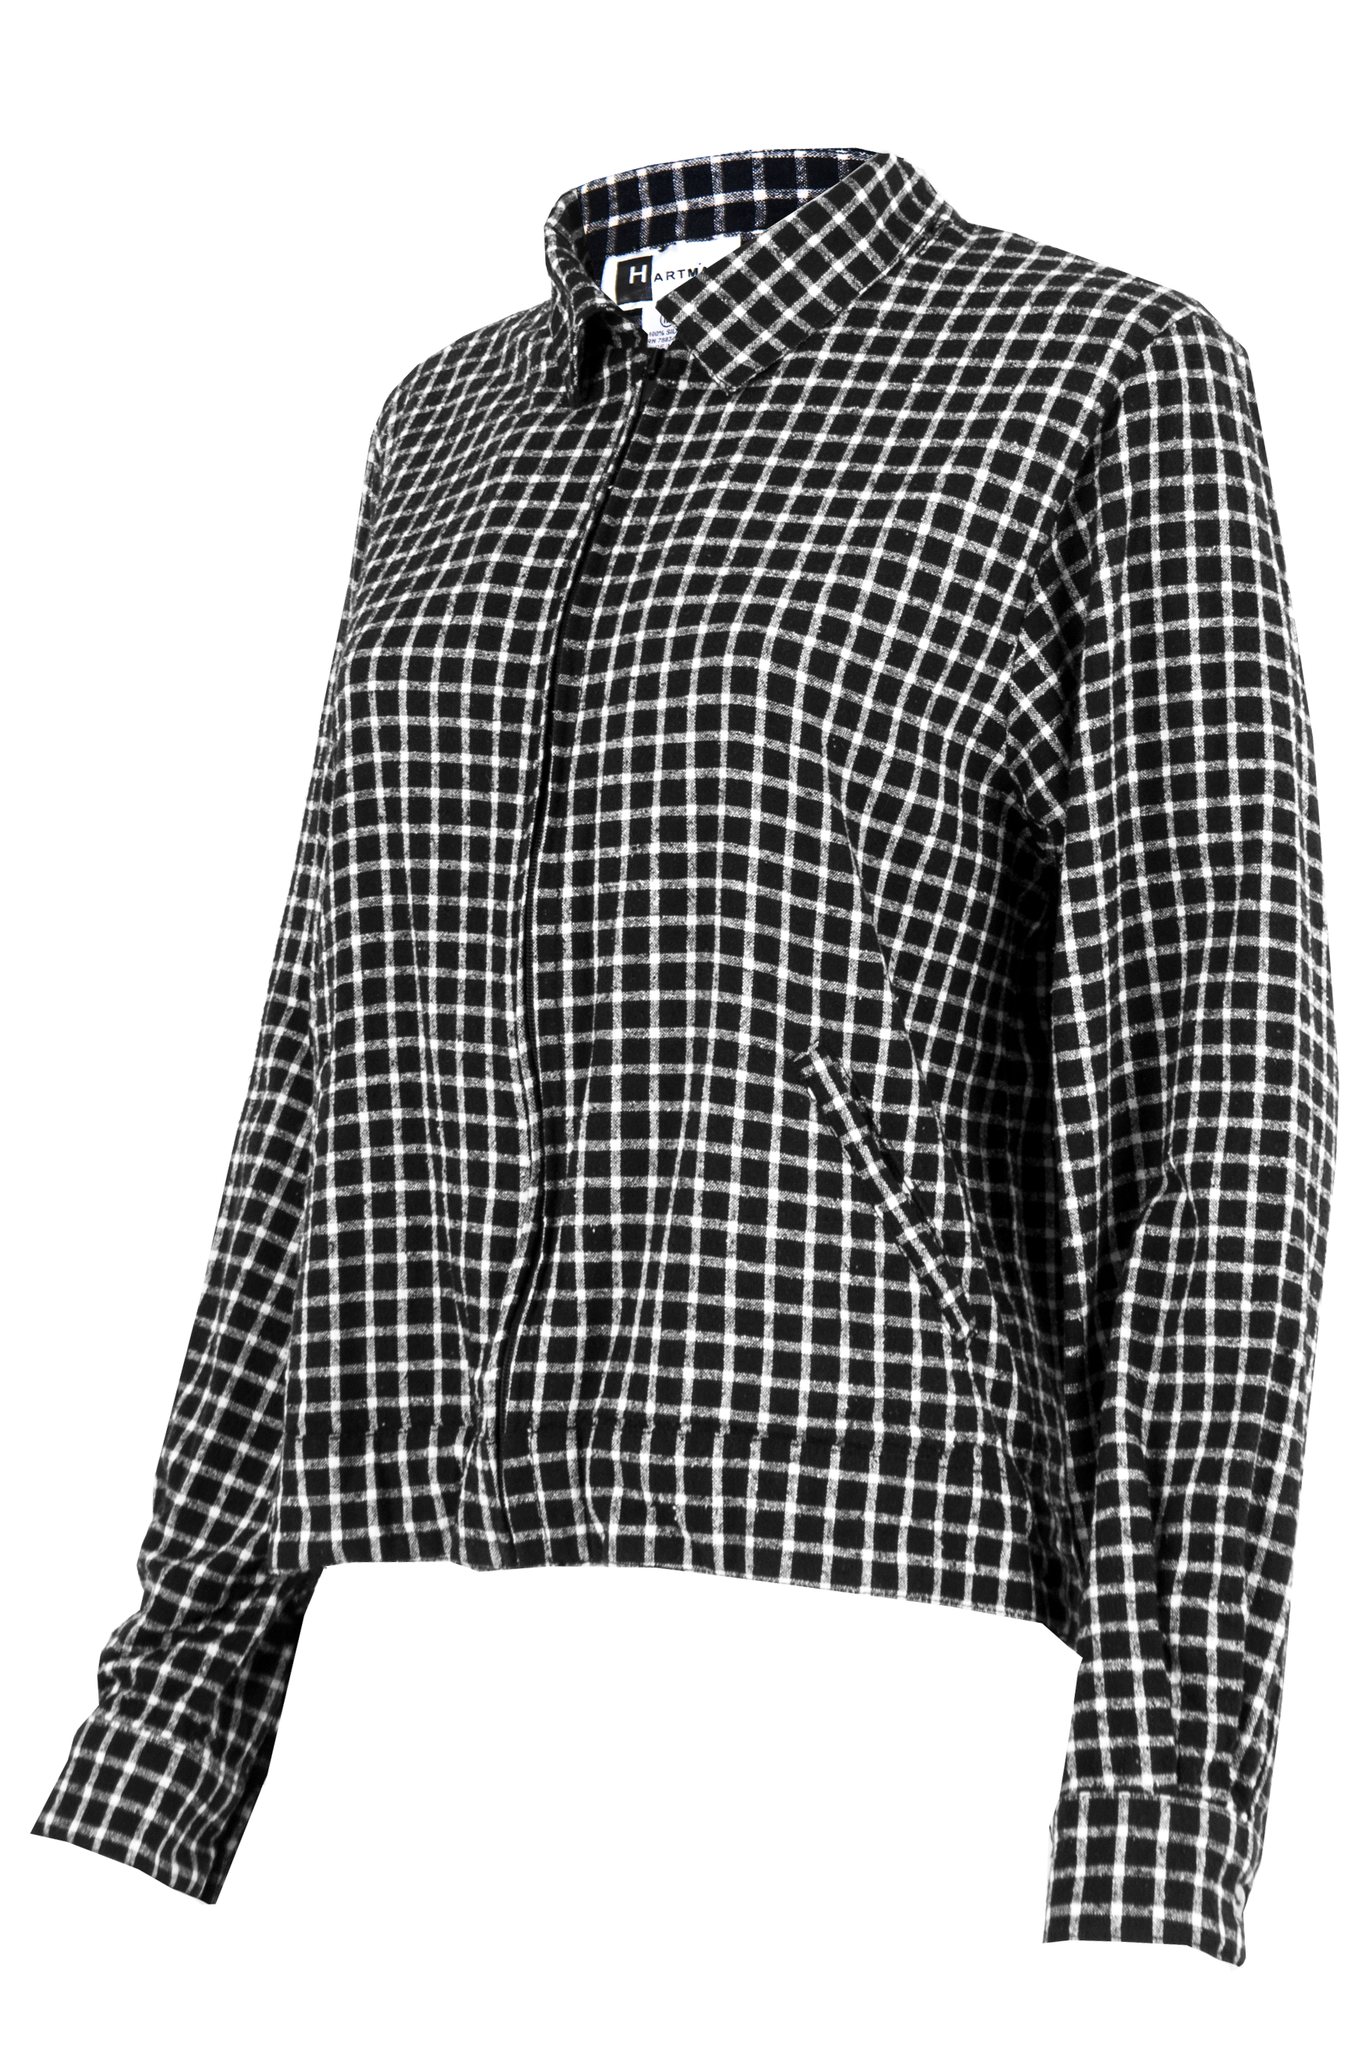 silk checkered jacket in black and white